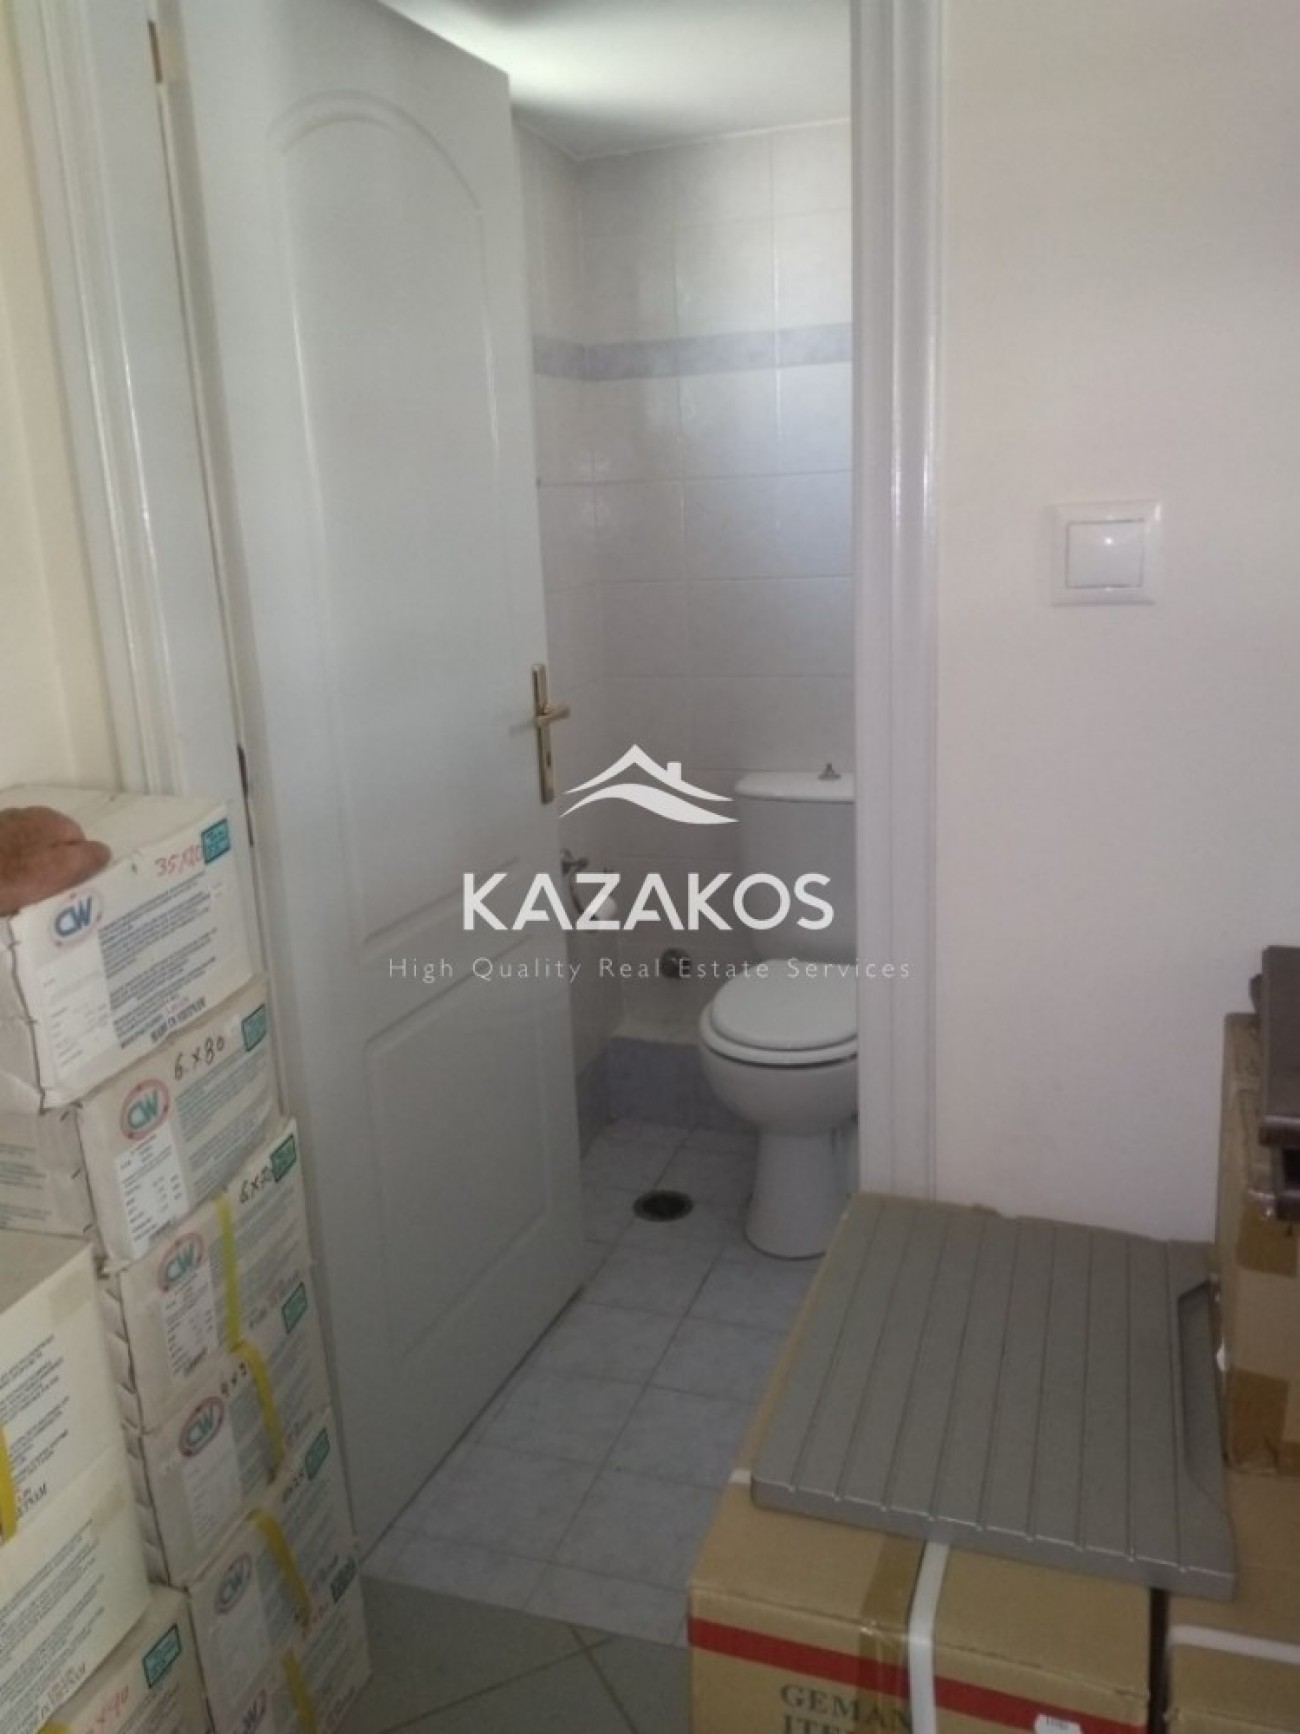 Shop for Rent in Gerakas, North & East Region of Athens, Greece